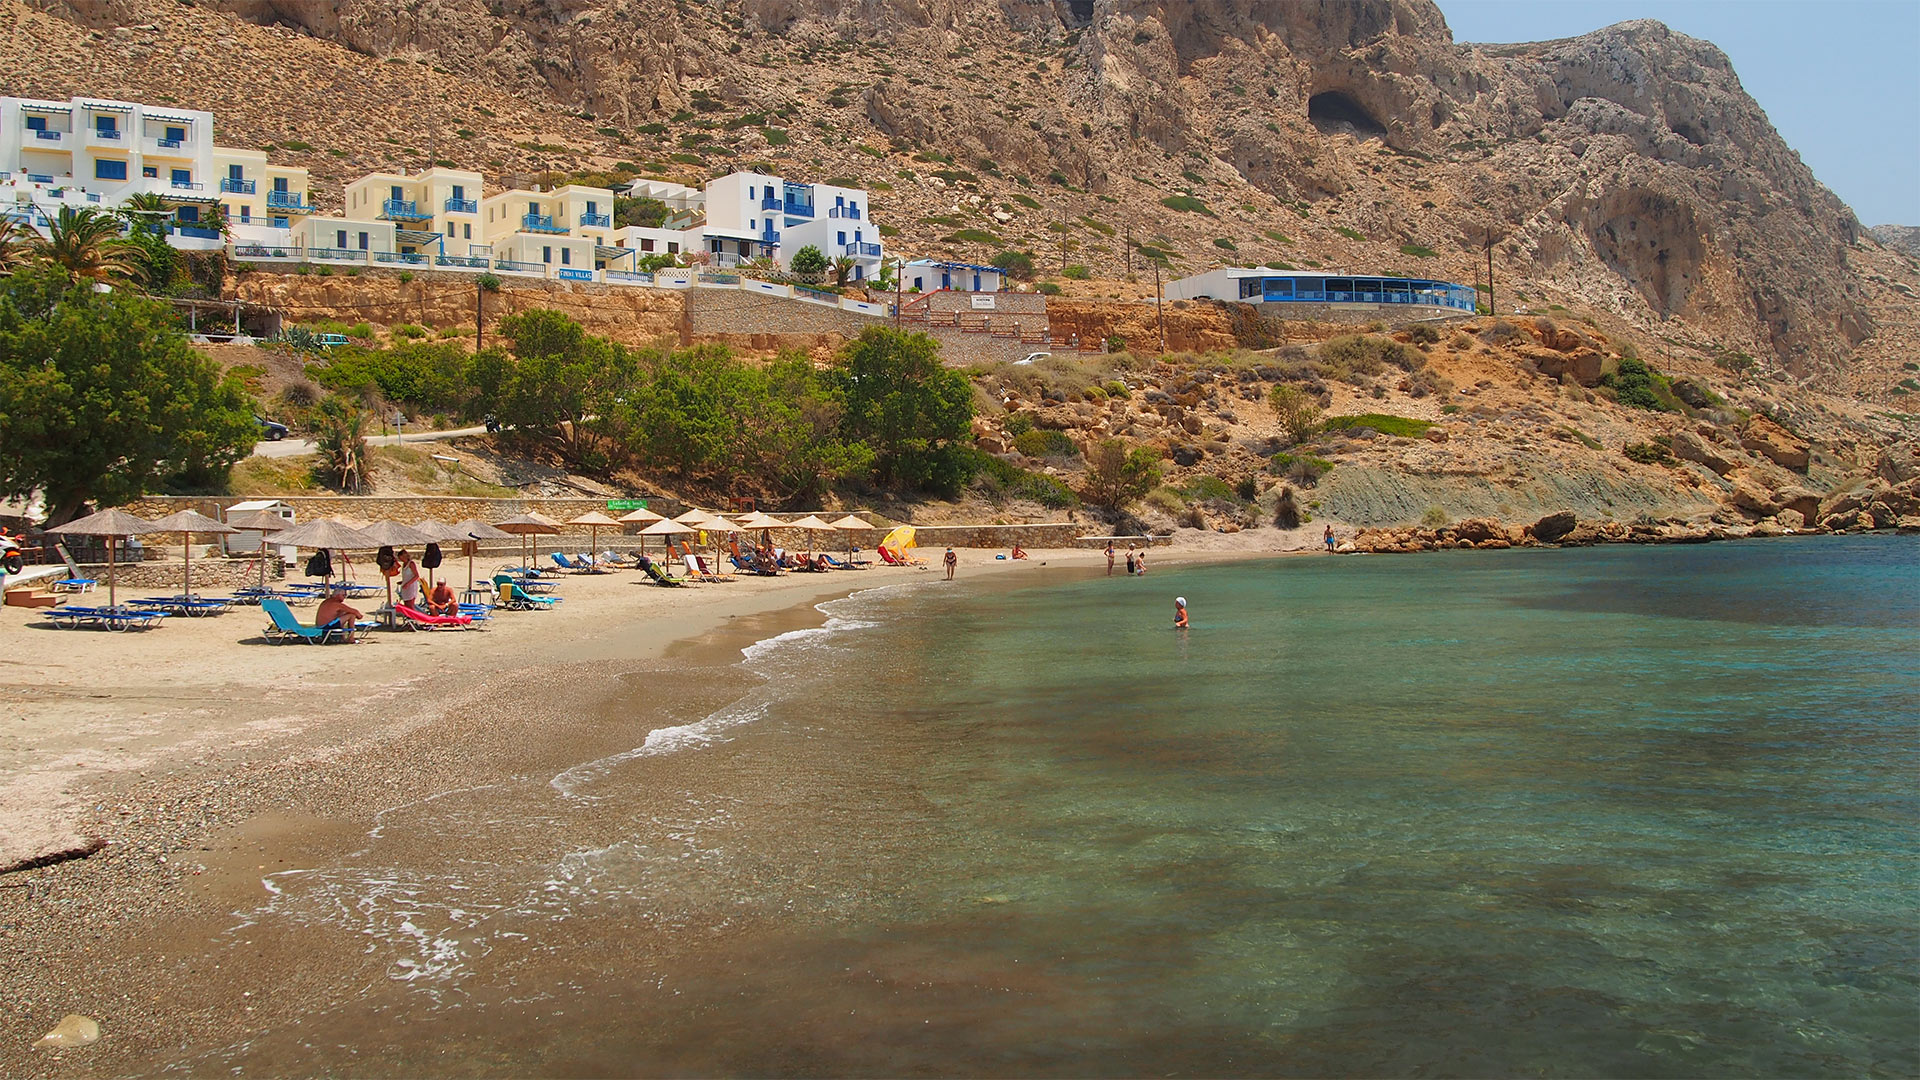 images/slider/finiki-beach-karpathos-slider.jpg